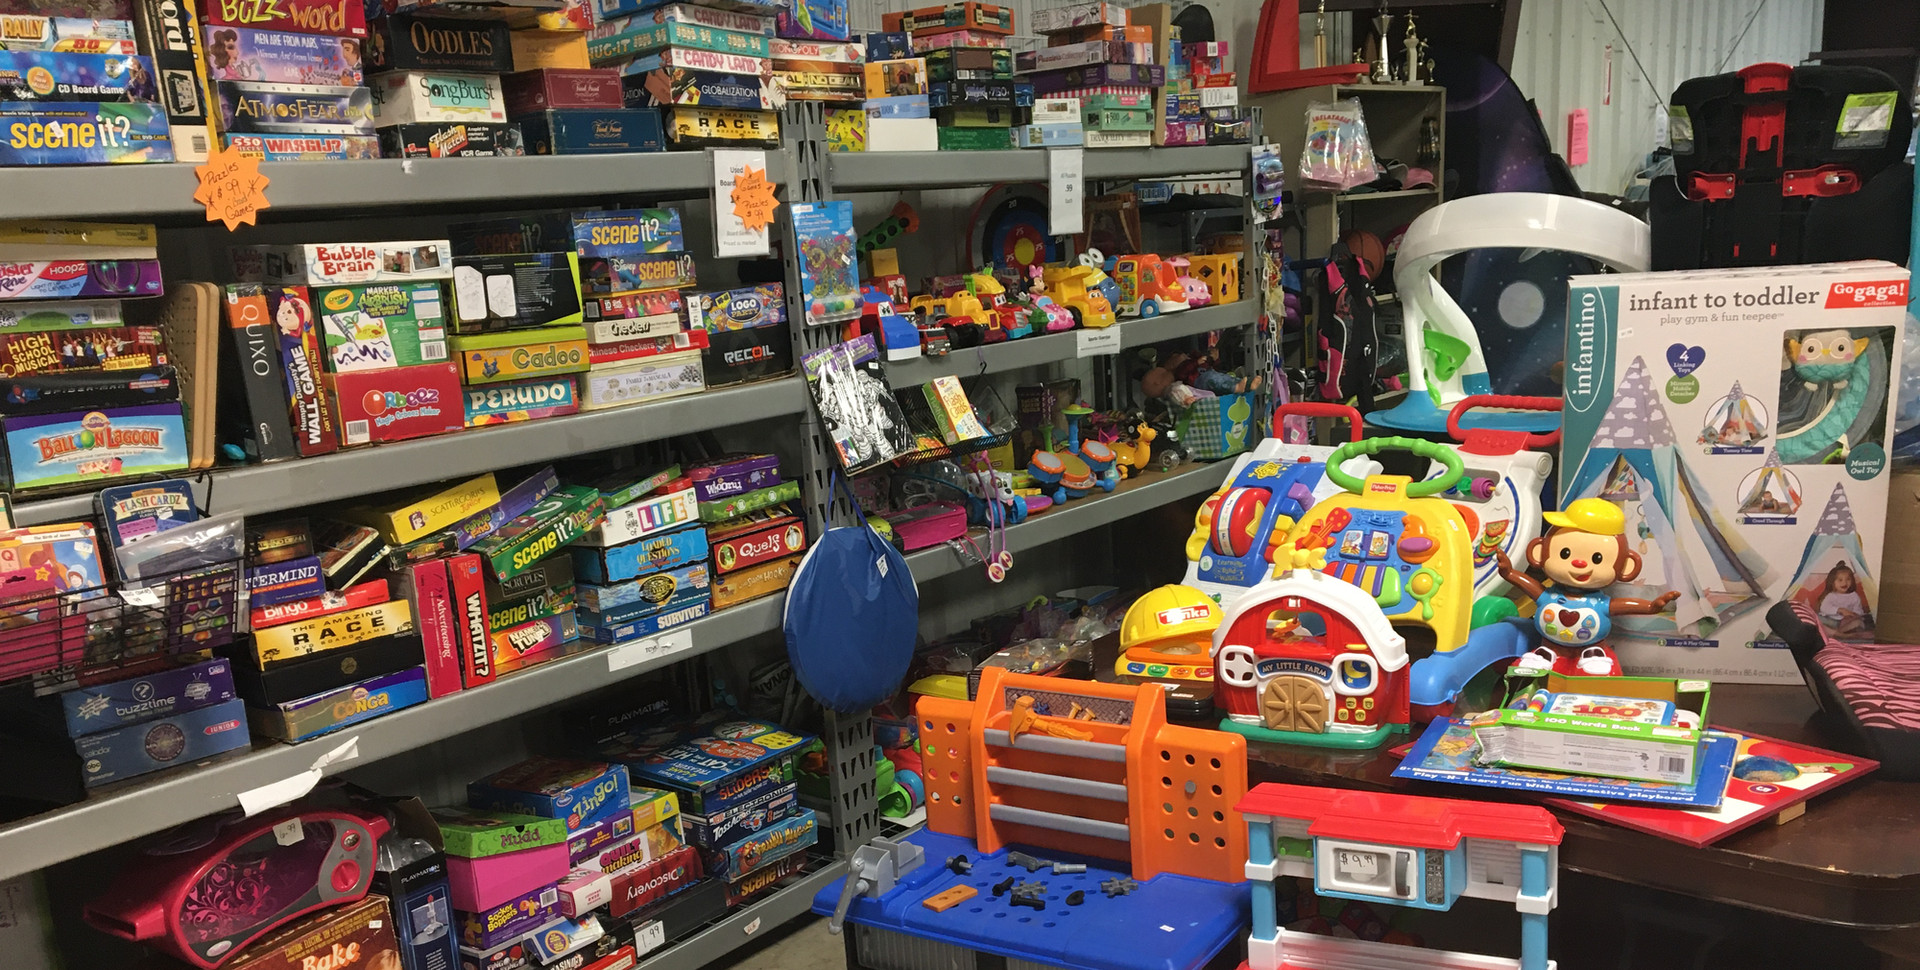 Toy and game section